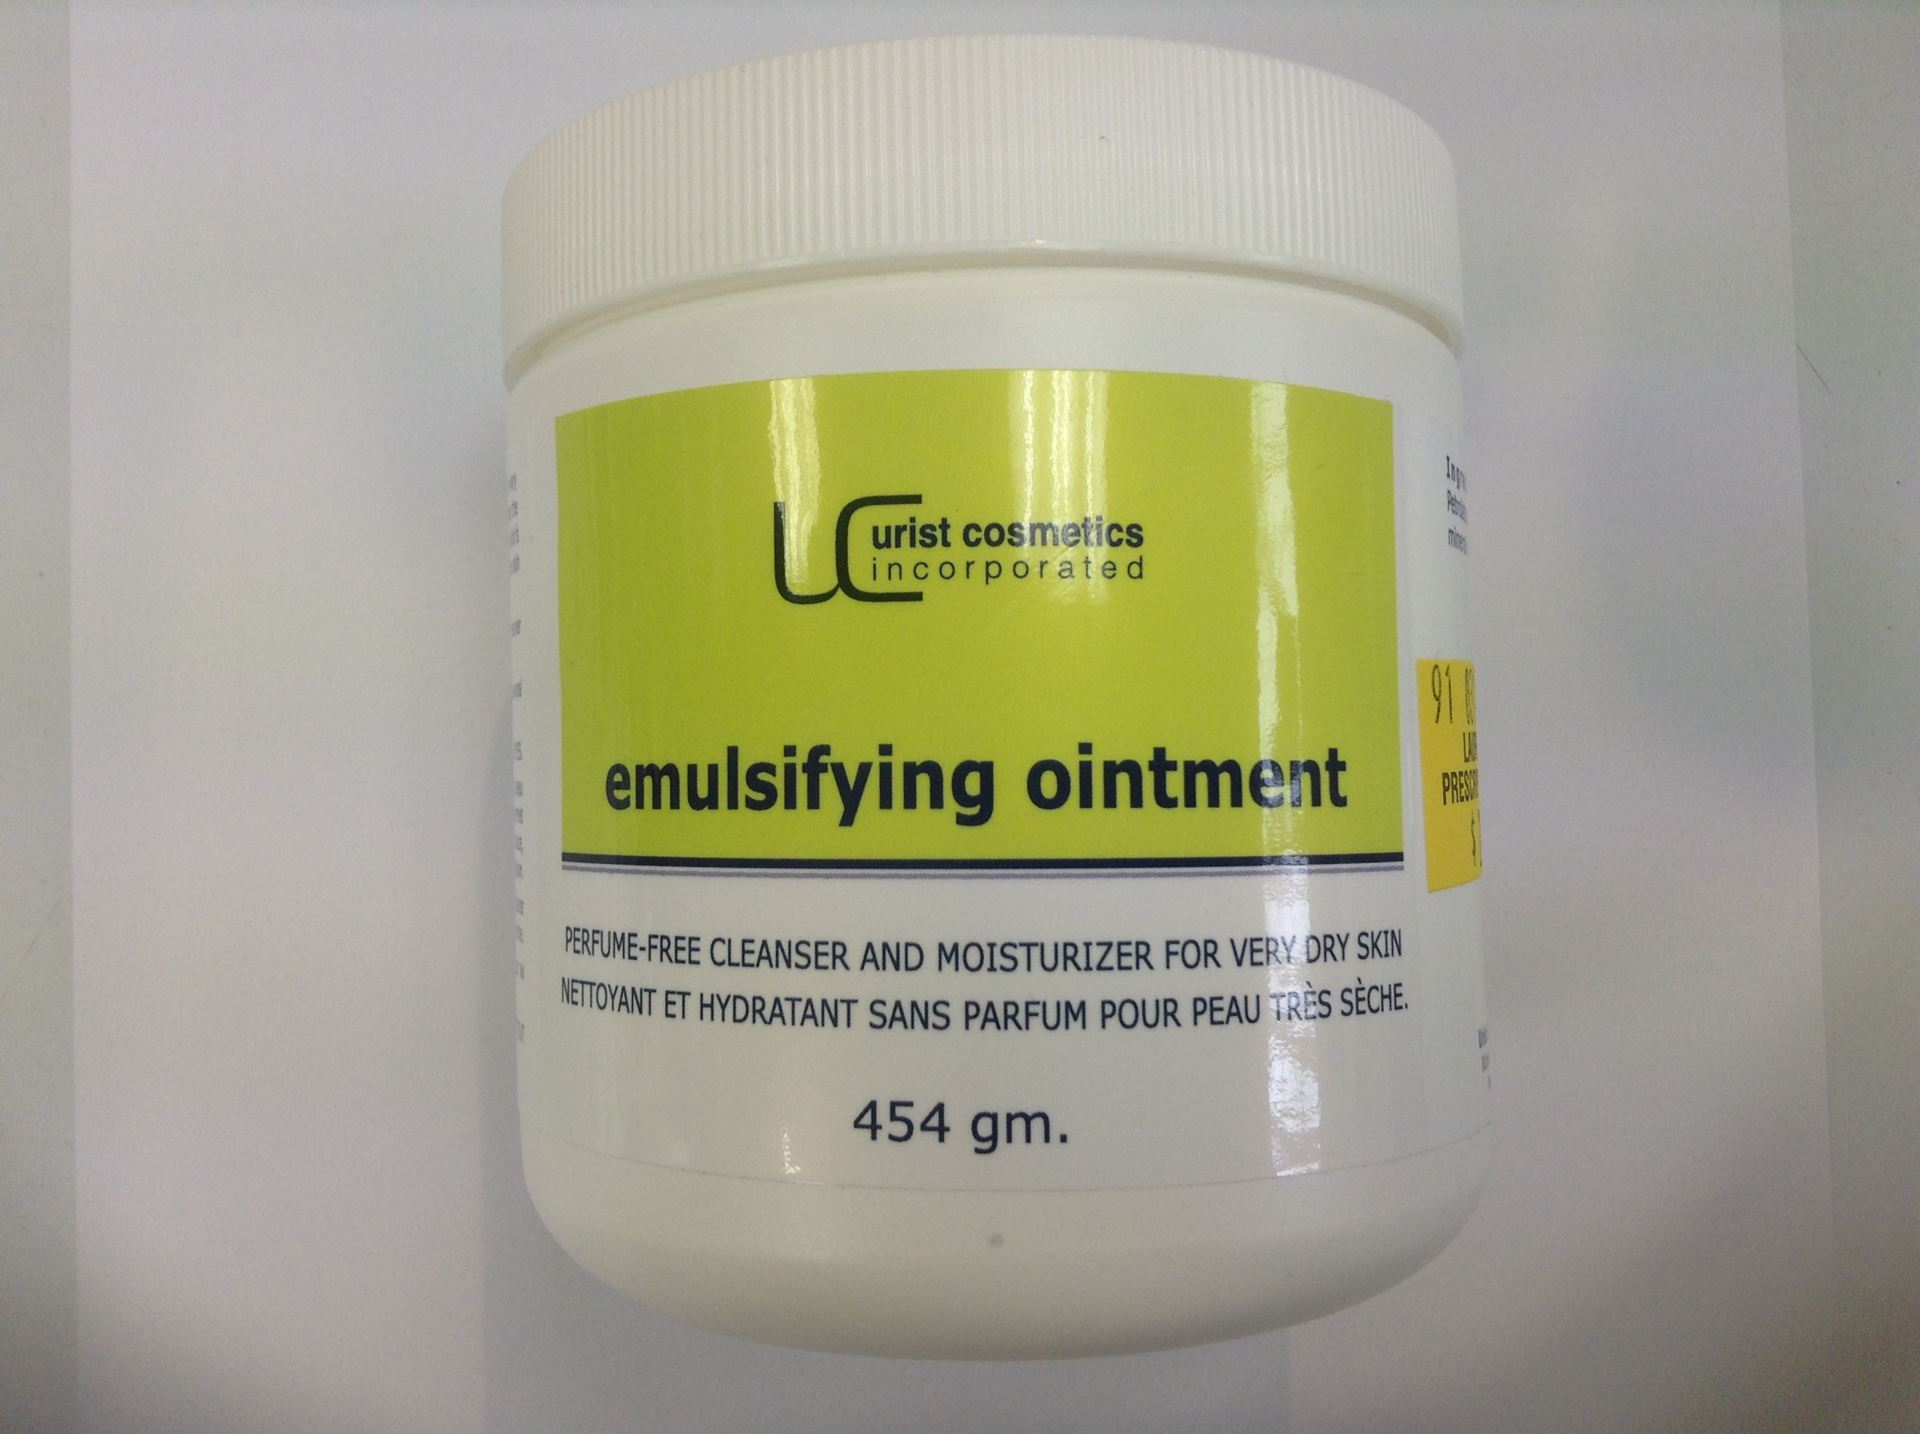 Emulsifying Ointment 454g